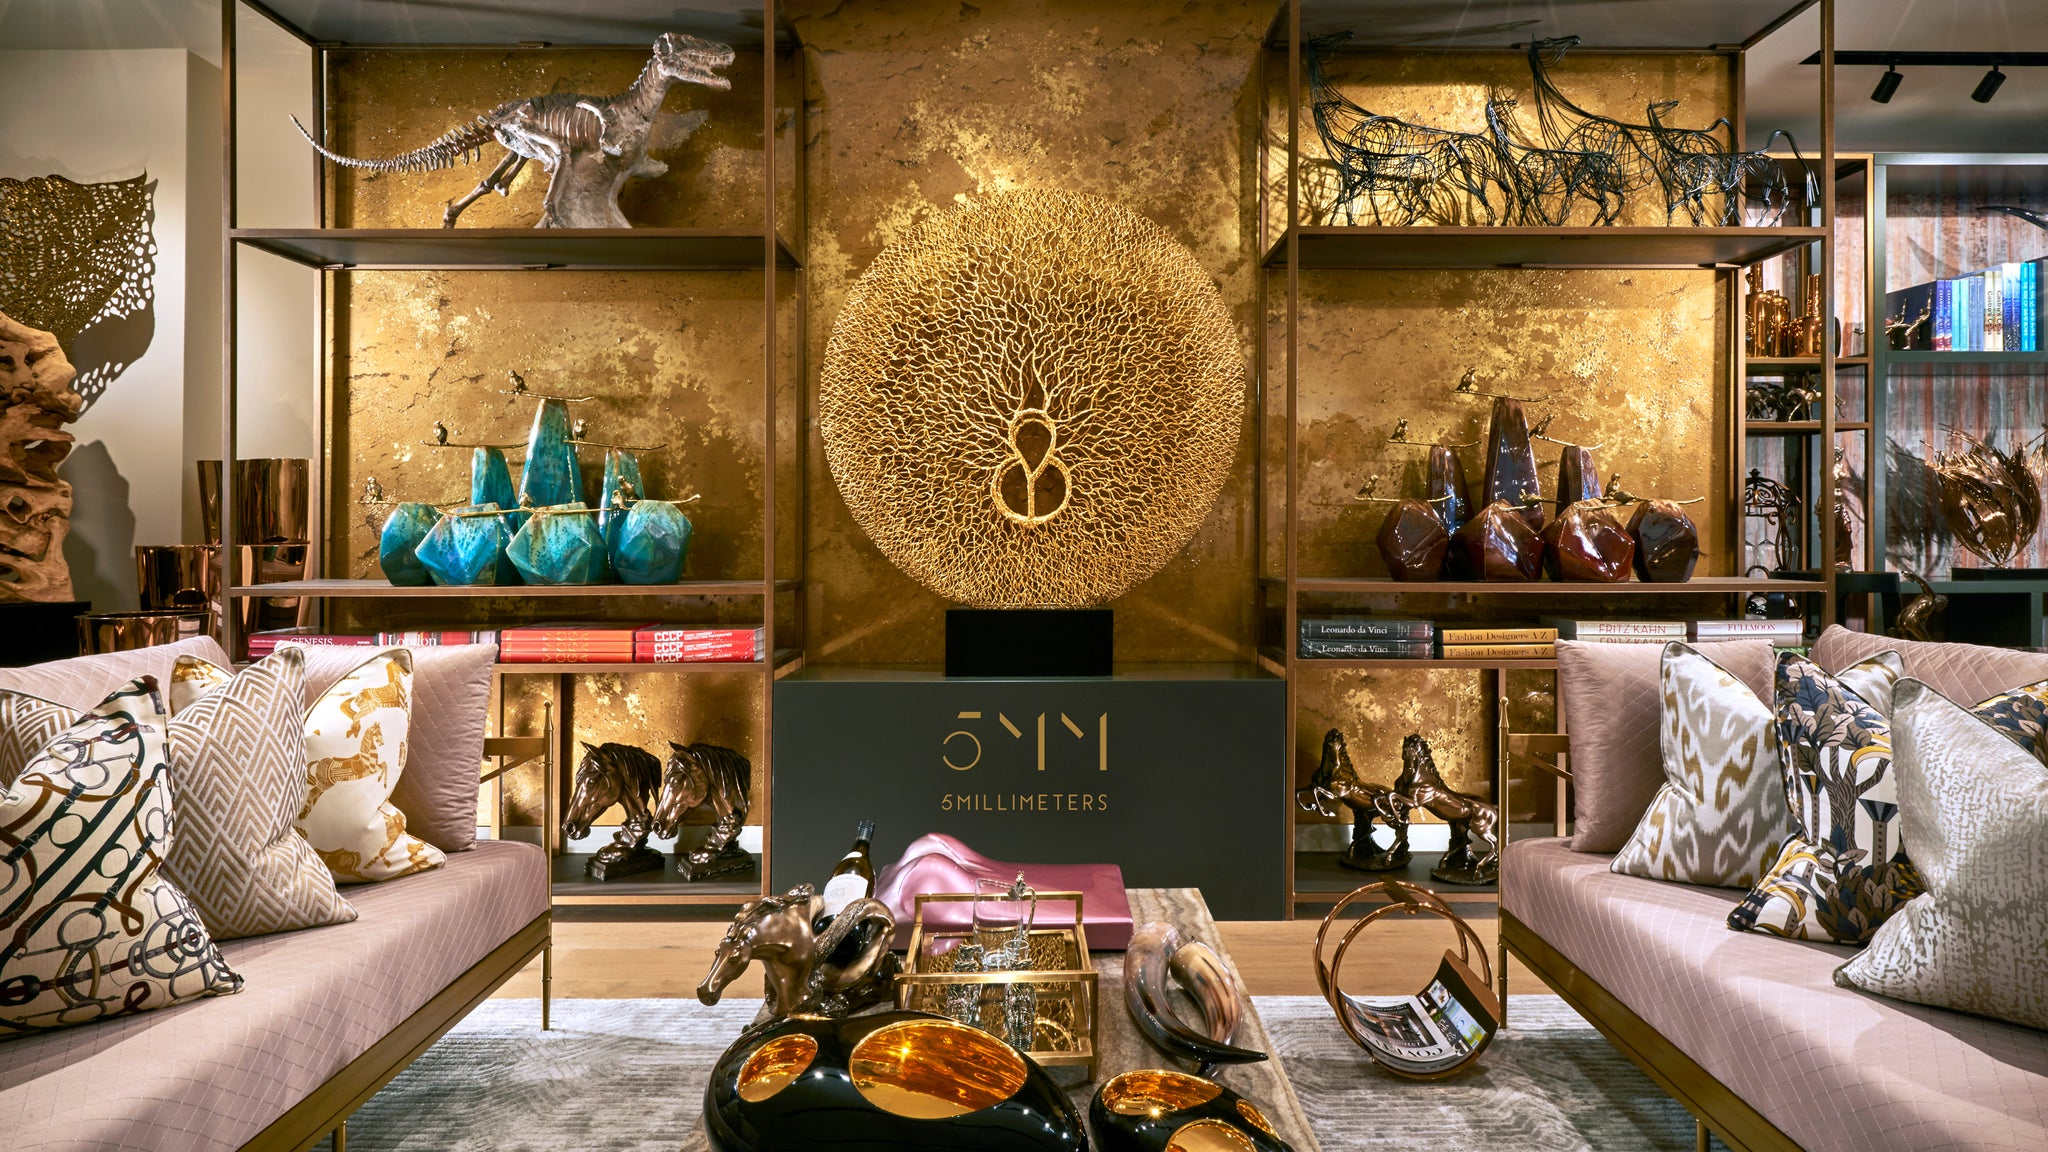 Retail Interior Design | Sculptures & Furniture | 5mm Design Home Accessories Shop | 5mm Design Store London